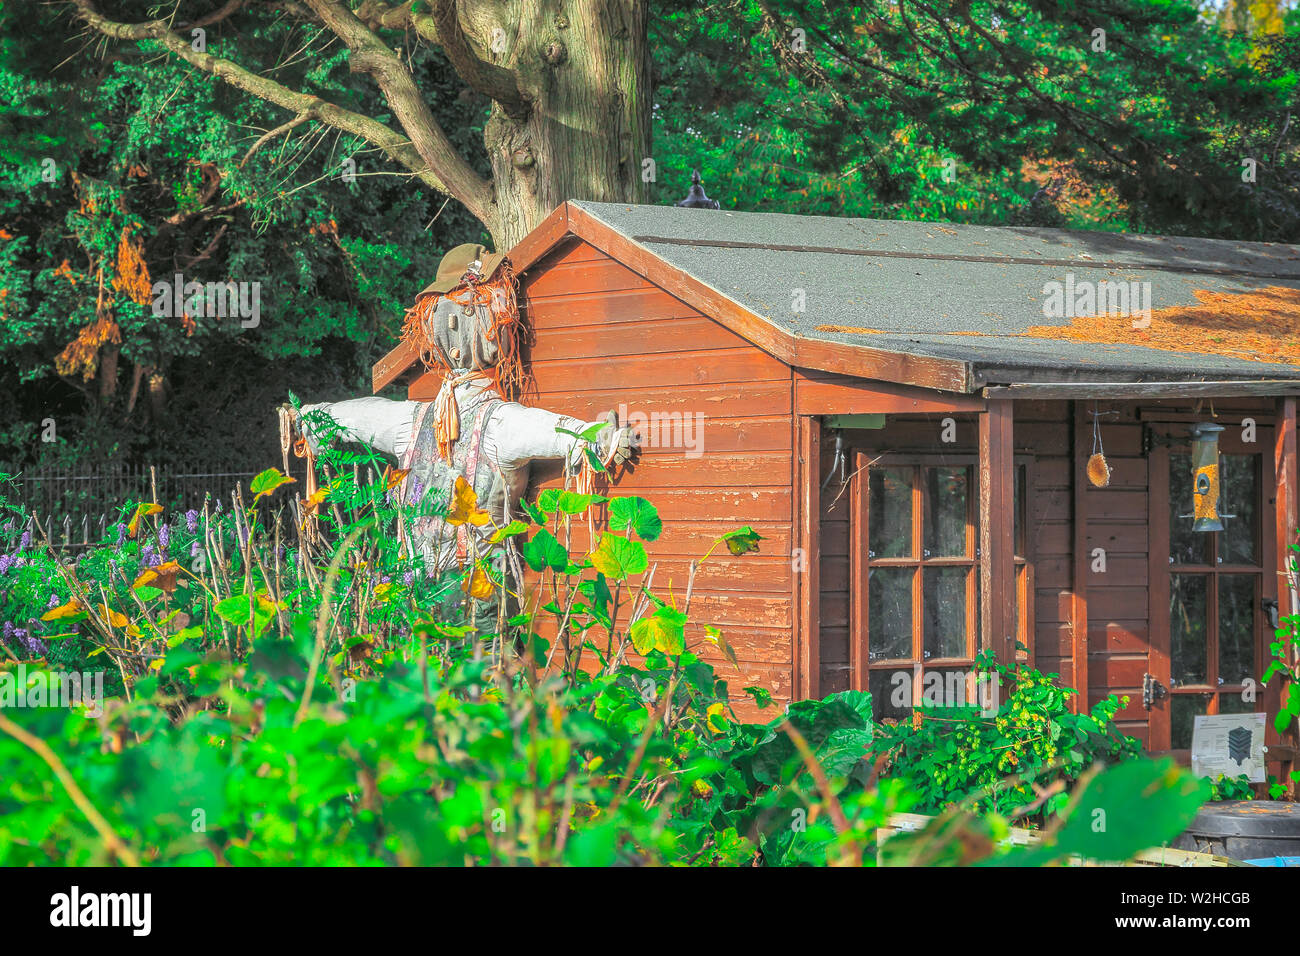 Scarecrow displayed outside a cabin in Regent's Park Allotment Garden of London, a food garden featuring a wide range of fruits and vegetables - Stock Image